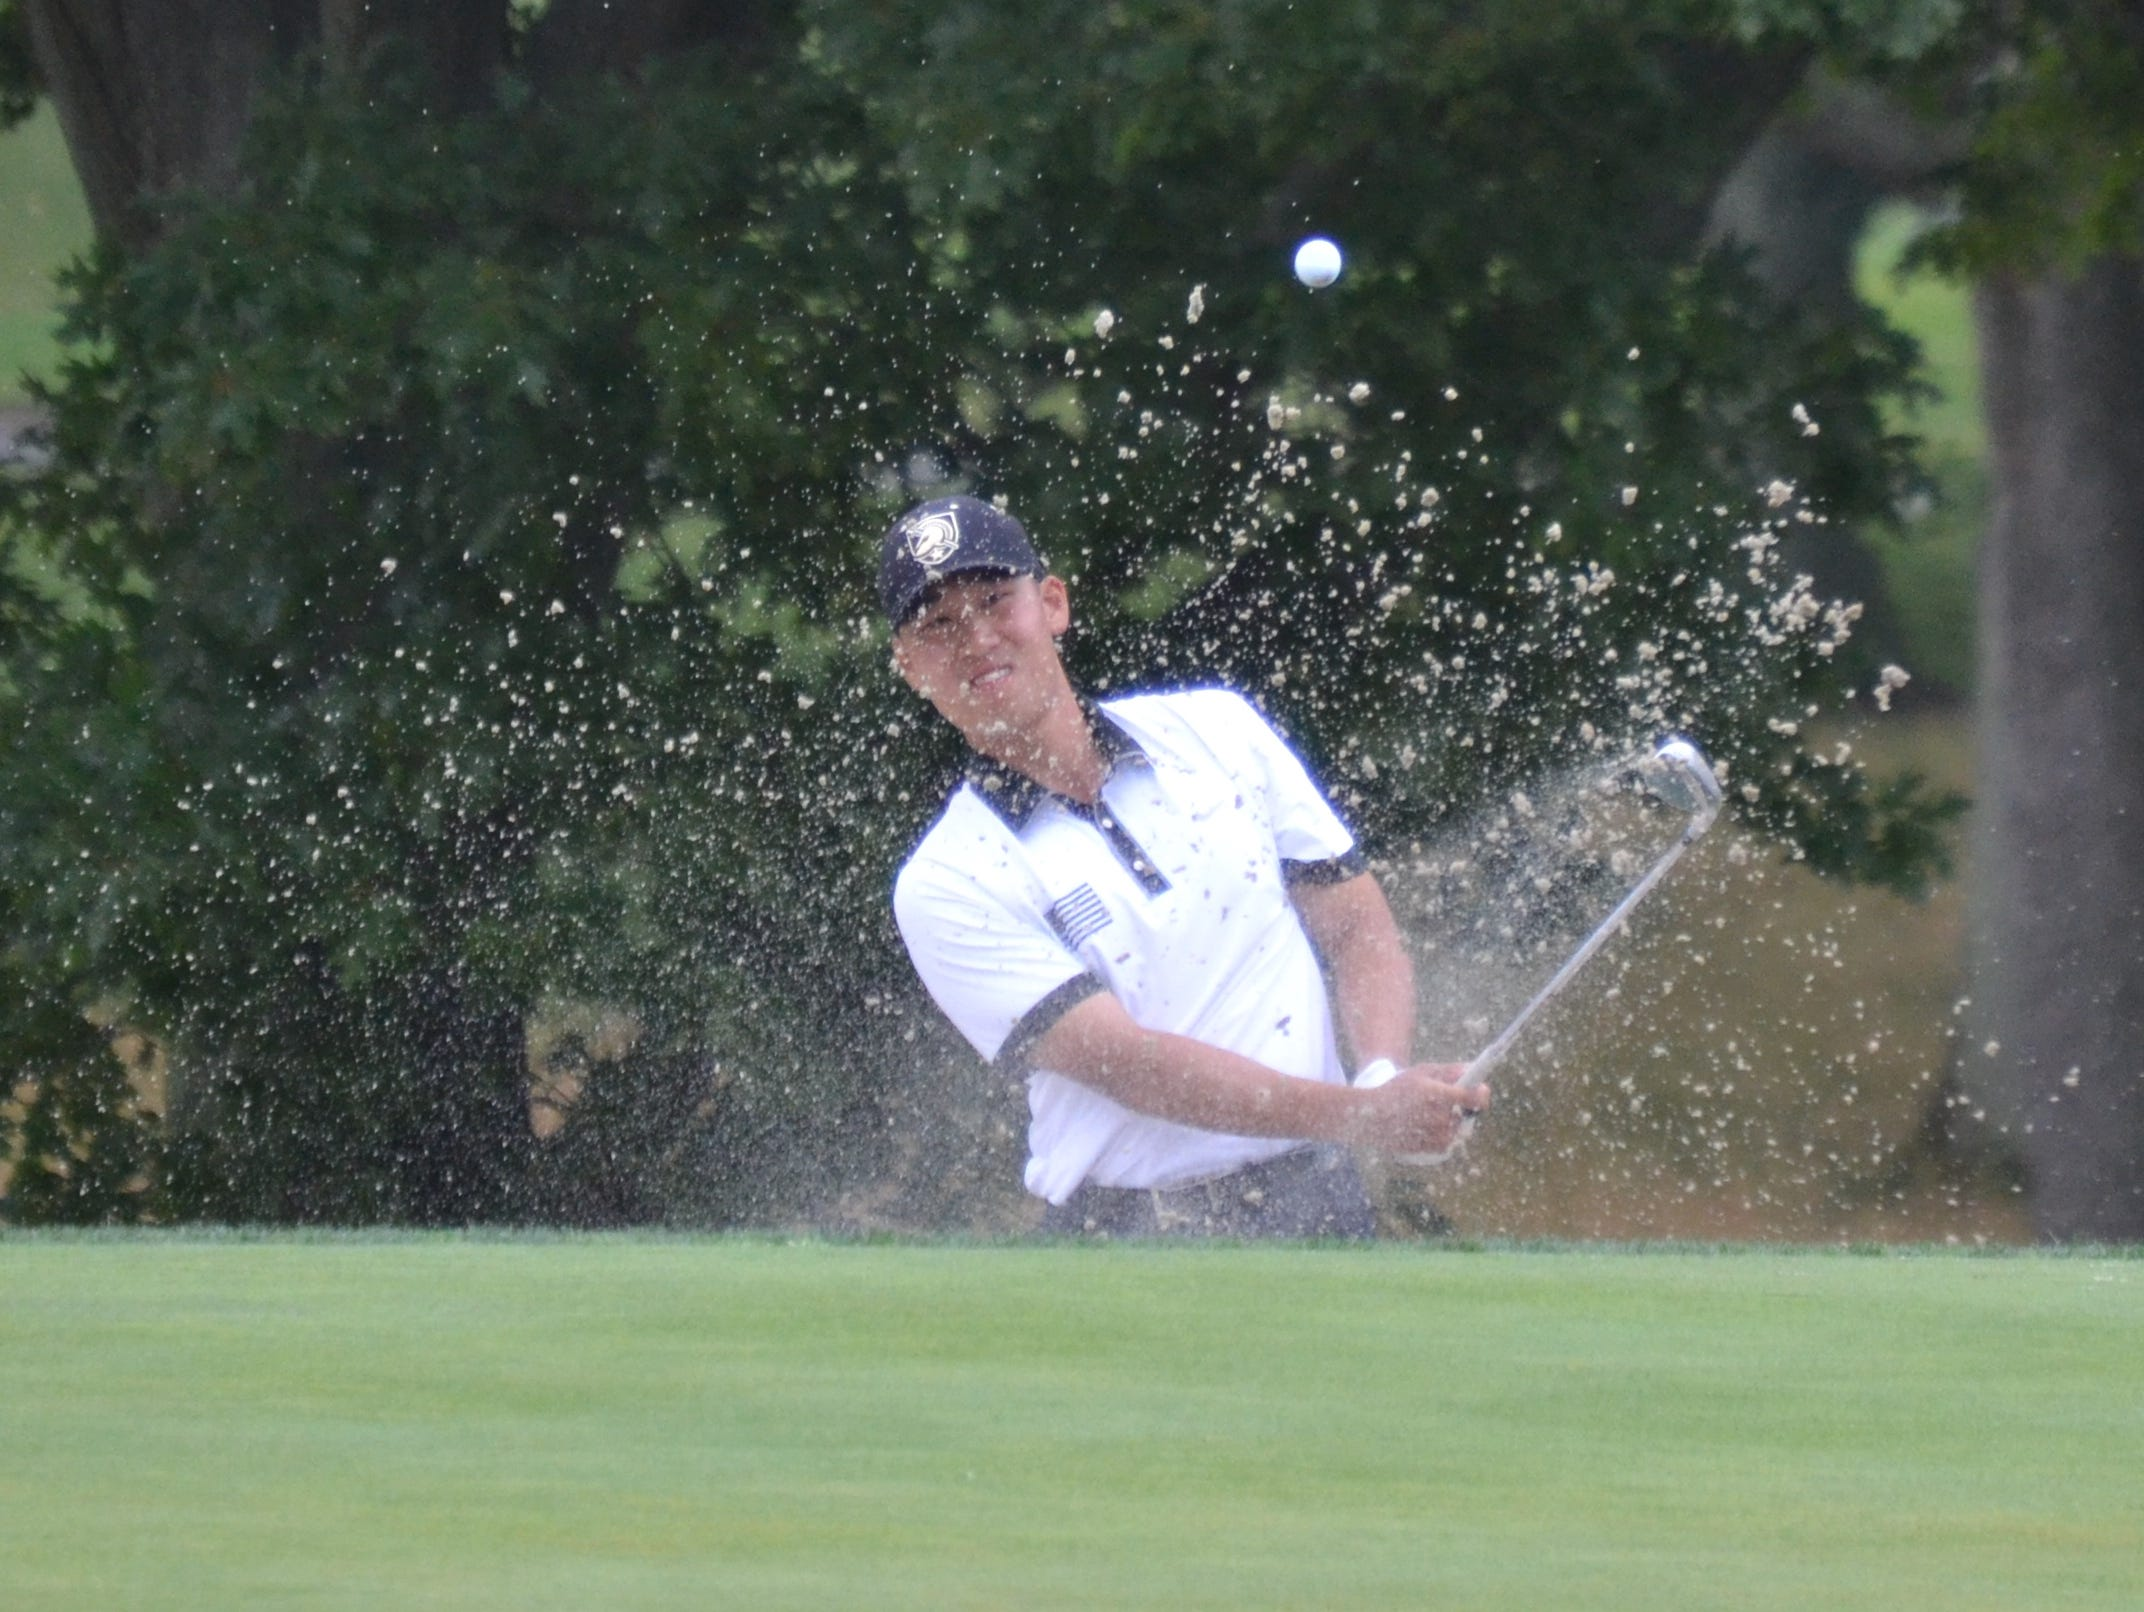 Peter Kim blasts from the bunker alongside the 18th green Tuesday in a playoff to determine the Ike champion.